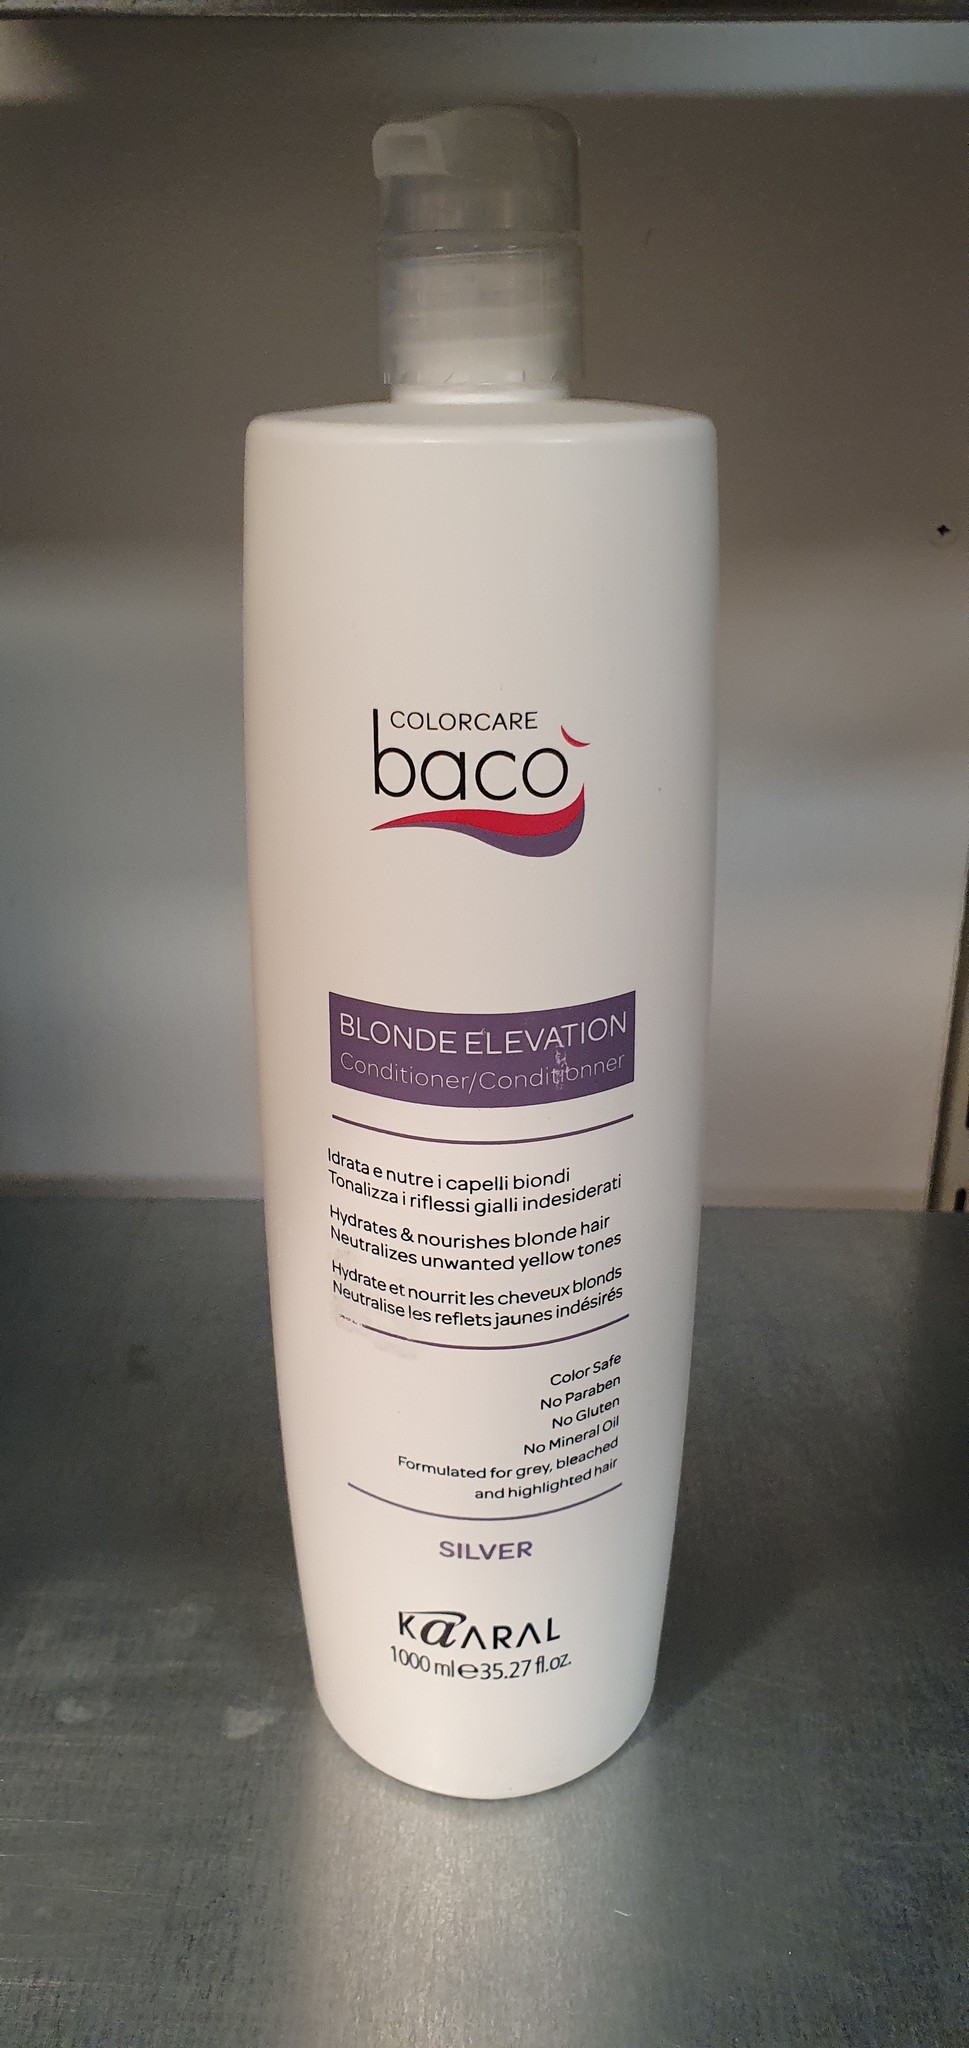 Kaaral Baco blonde elevation silver conditioner